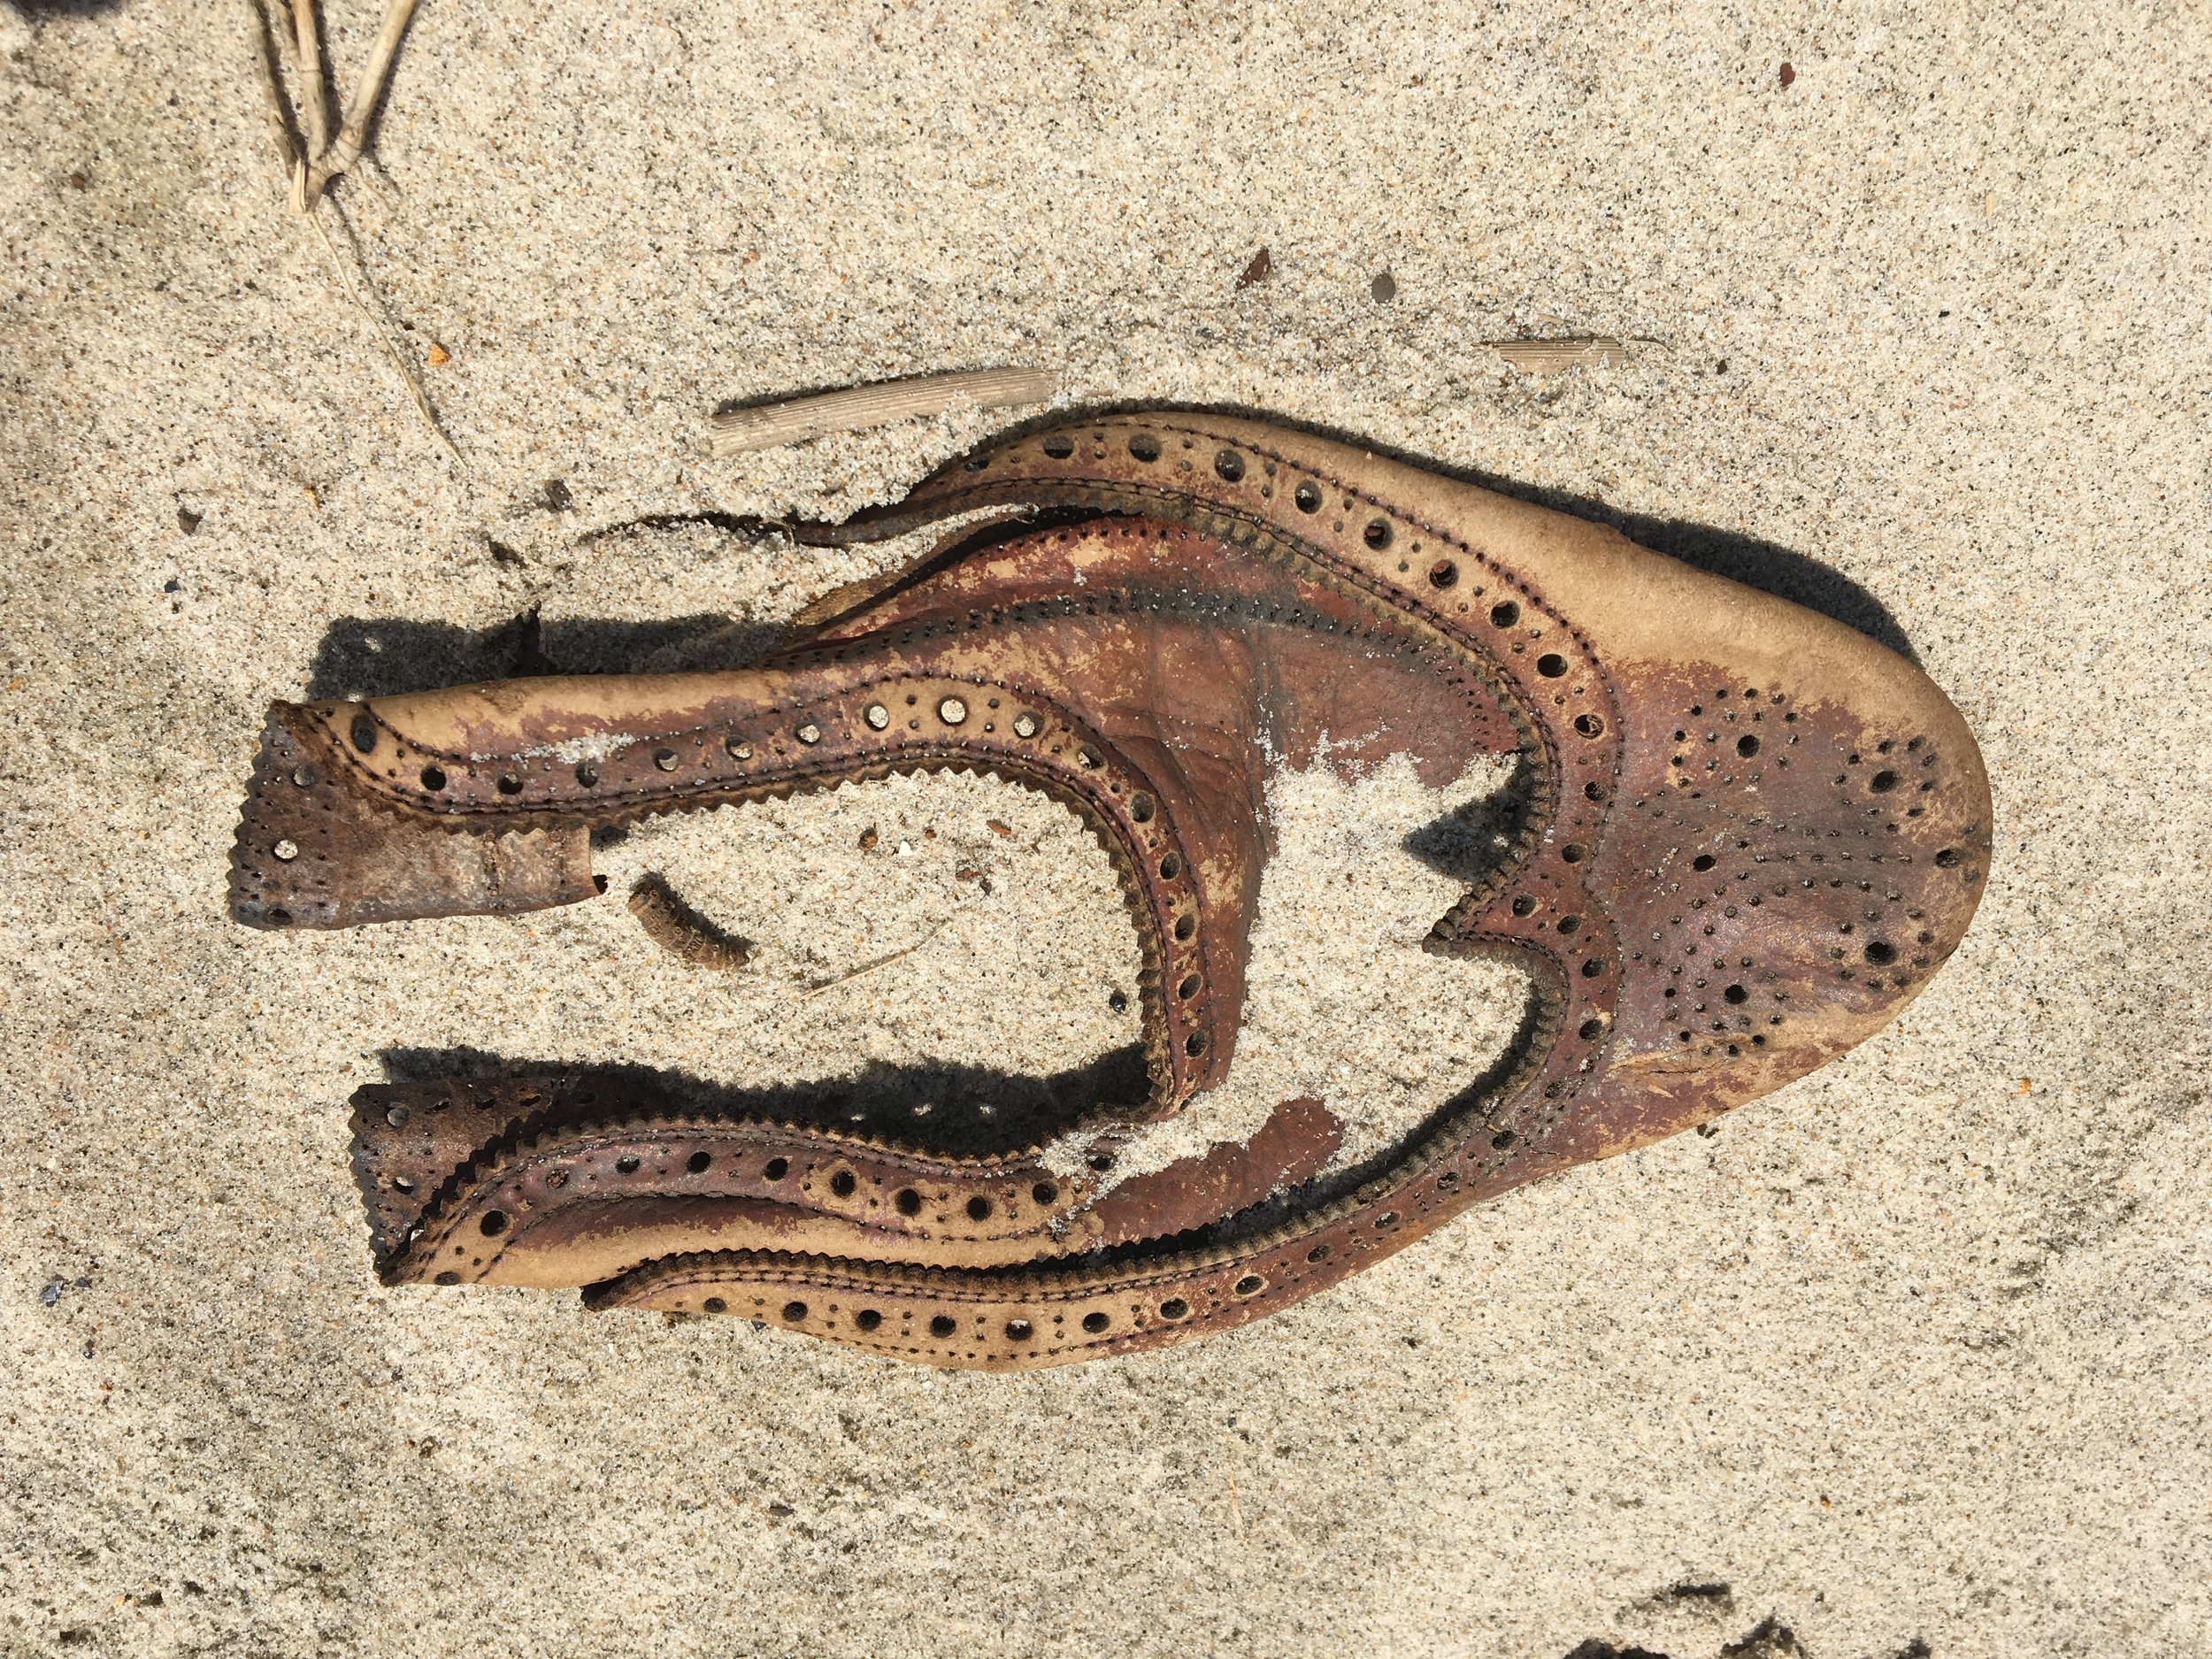 A shoe found in the sand - most likely dating back to the 1950s given the style and history of the bay.